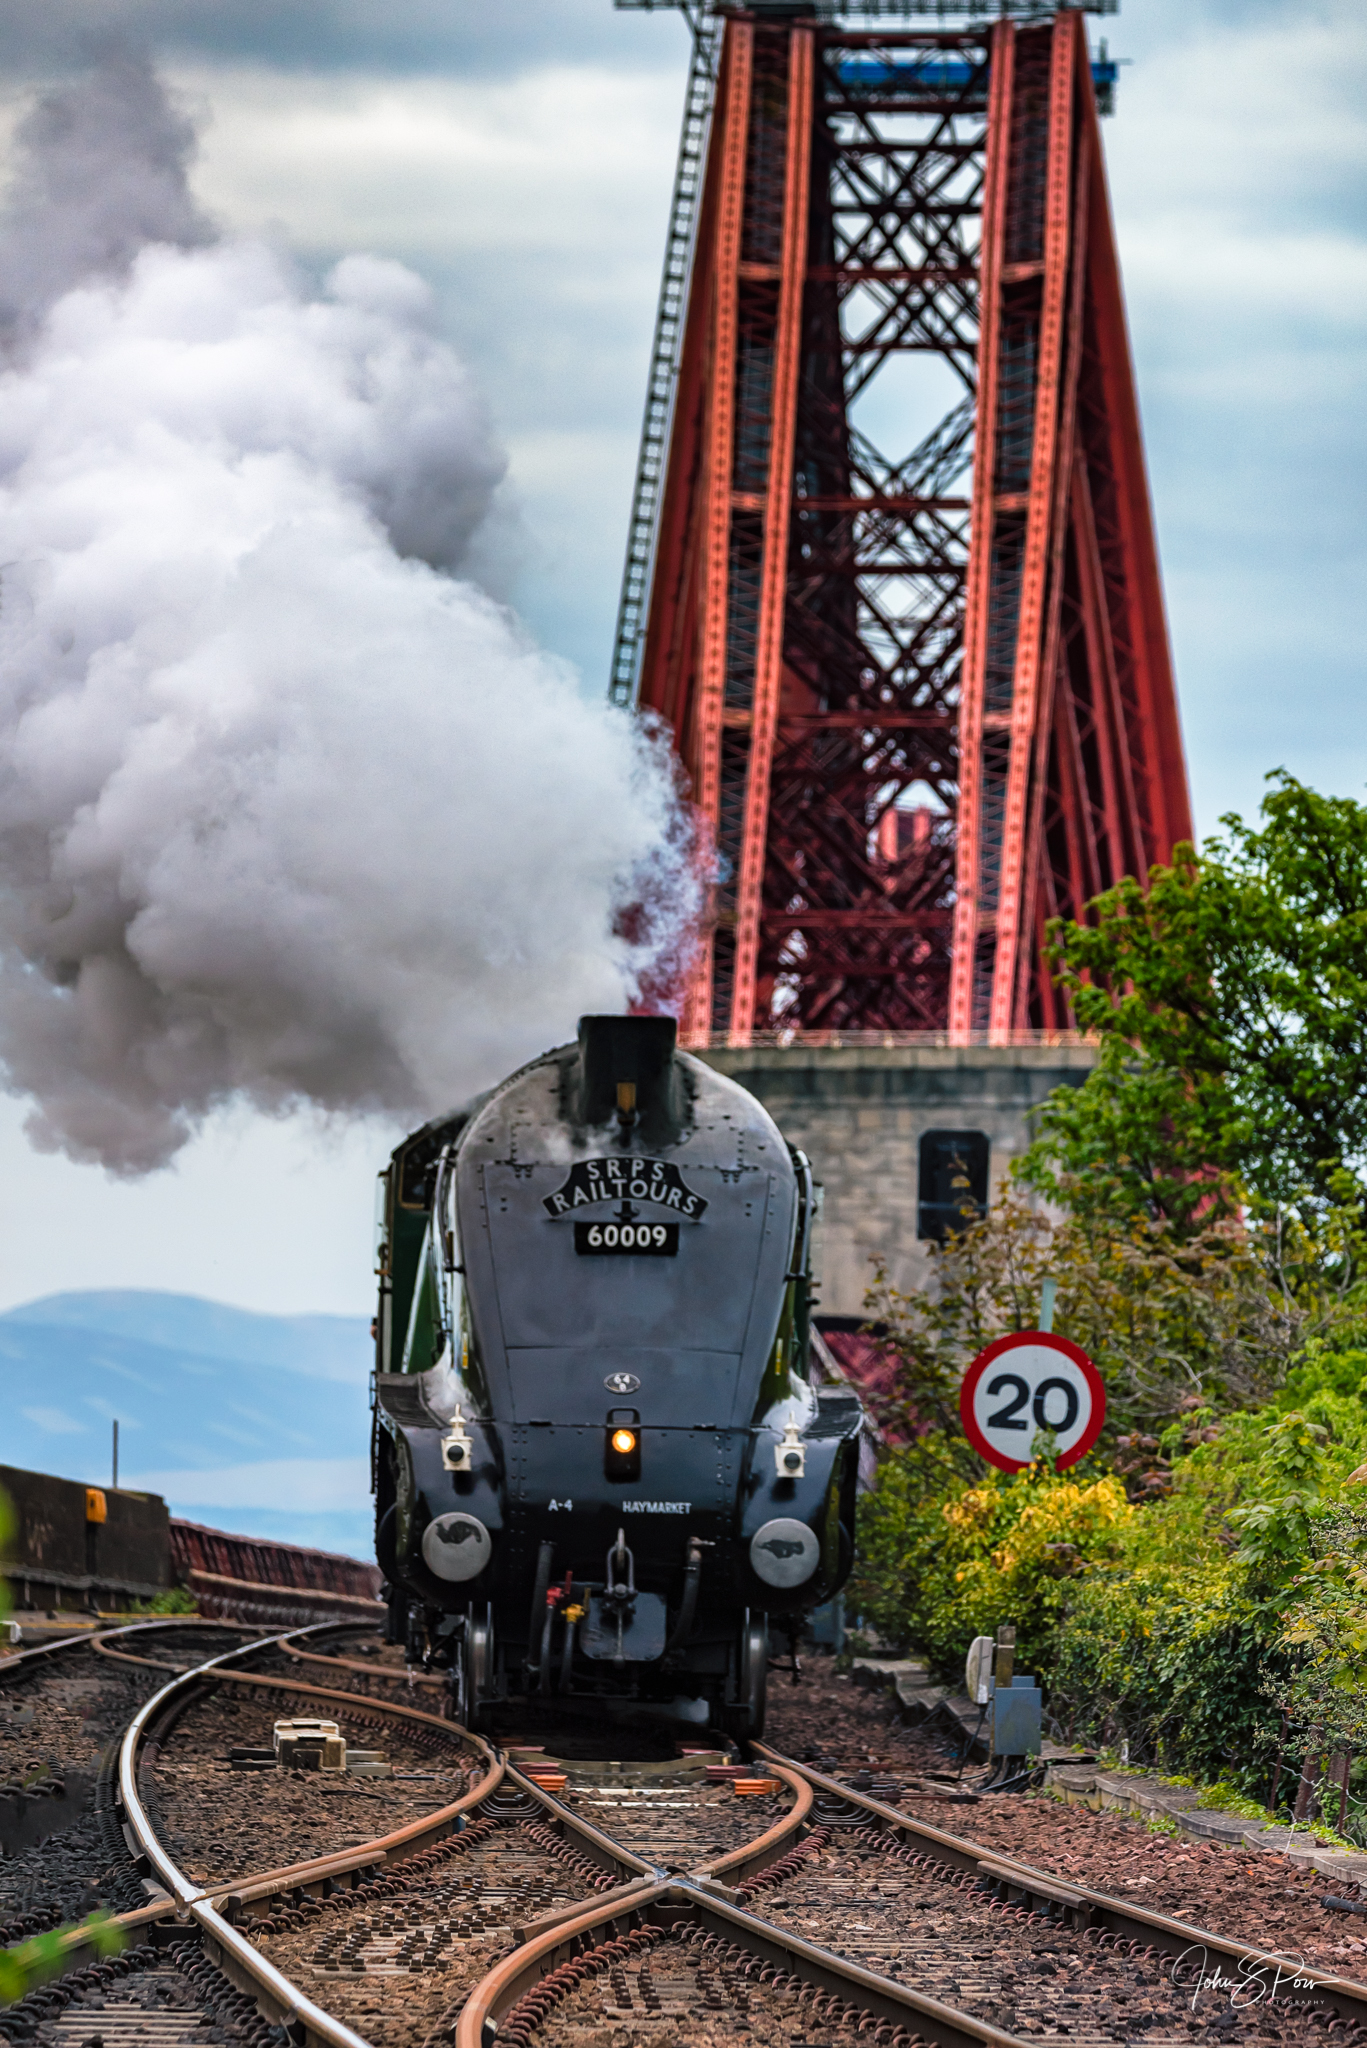 The Union of South Africa steam into Fife at North Queensferry with the Forth Bridge in the background.